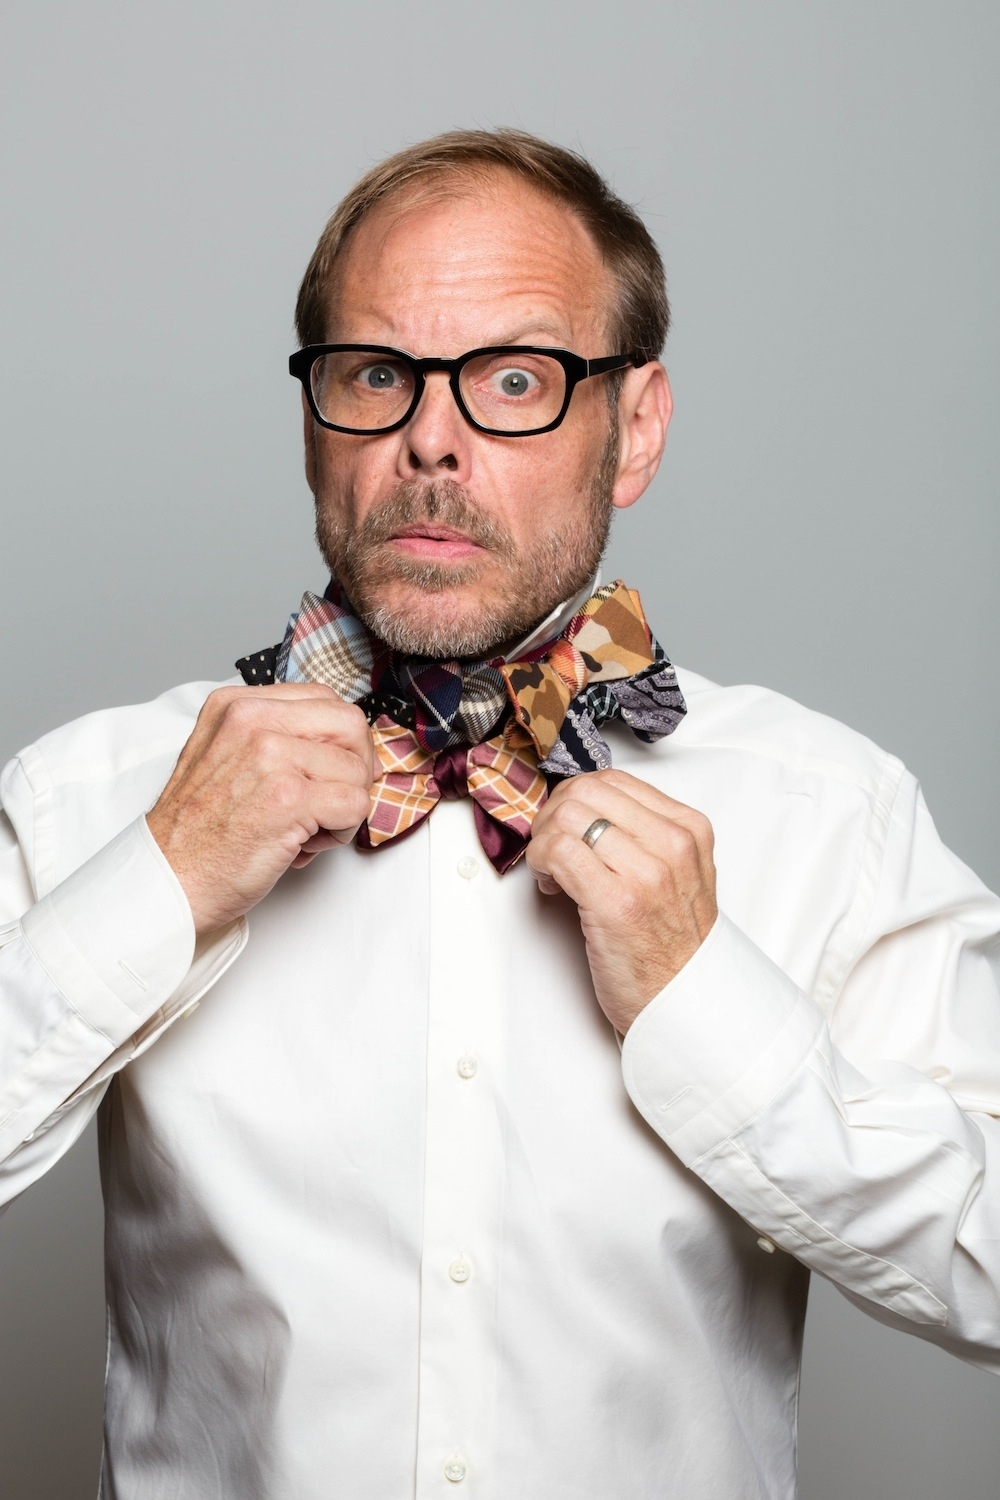 Alton Brown Has His Own Line Of Bow Ties Now